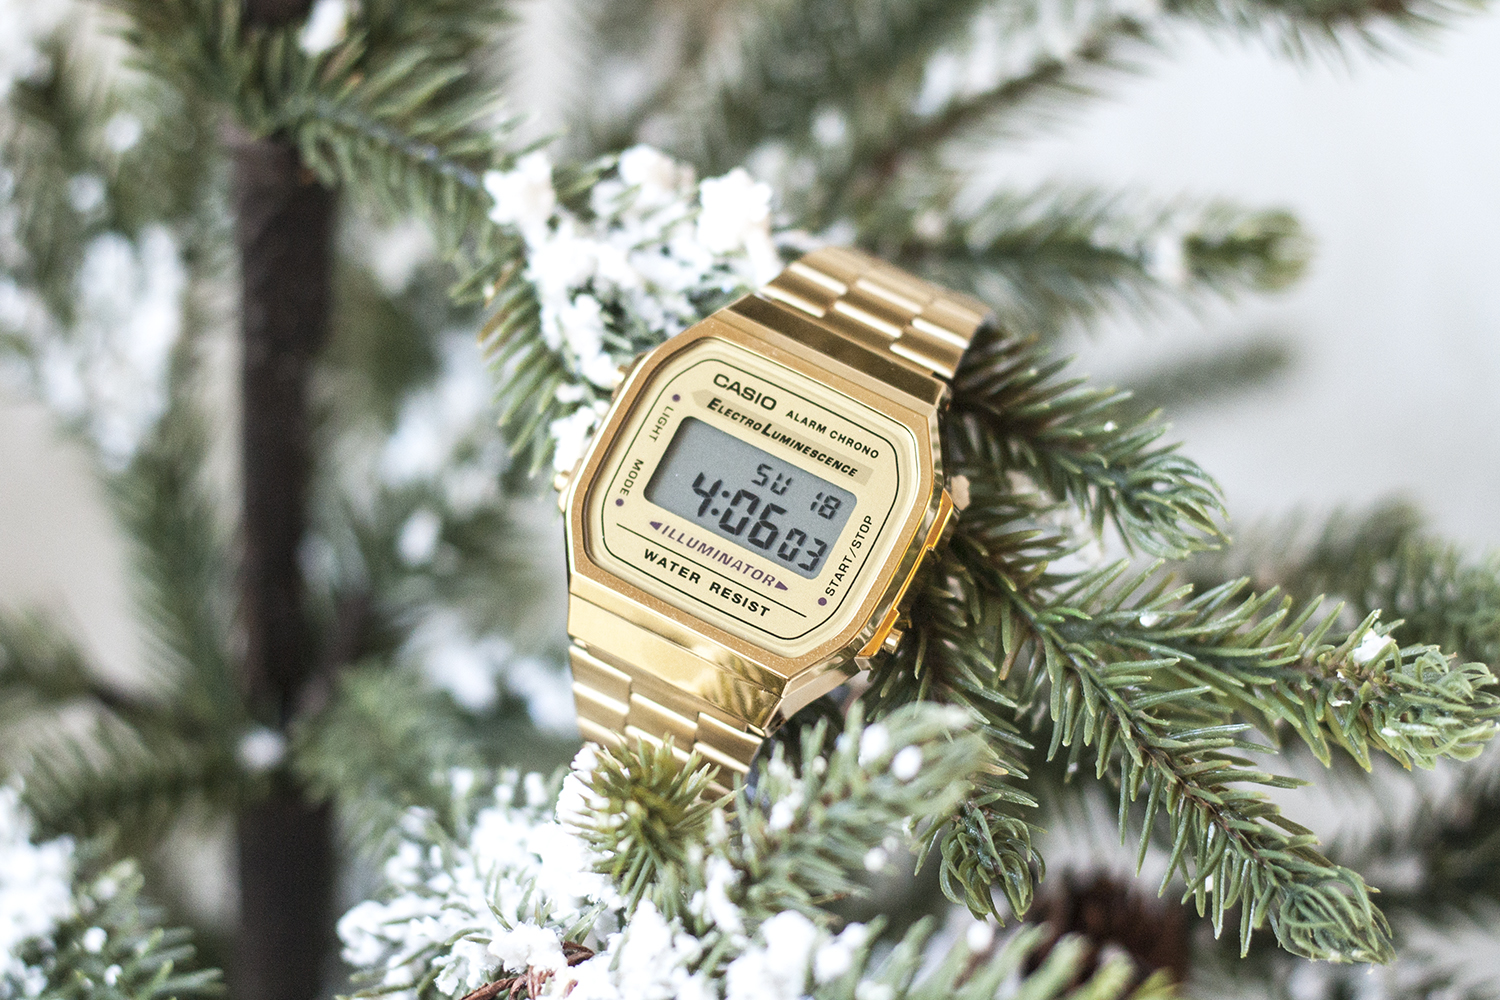 01casio-vintage-gold-watch-holiday-style-fashion